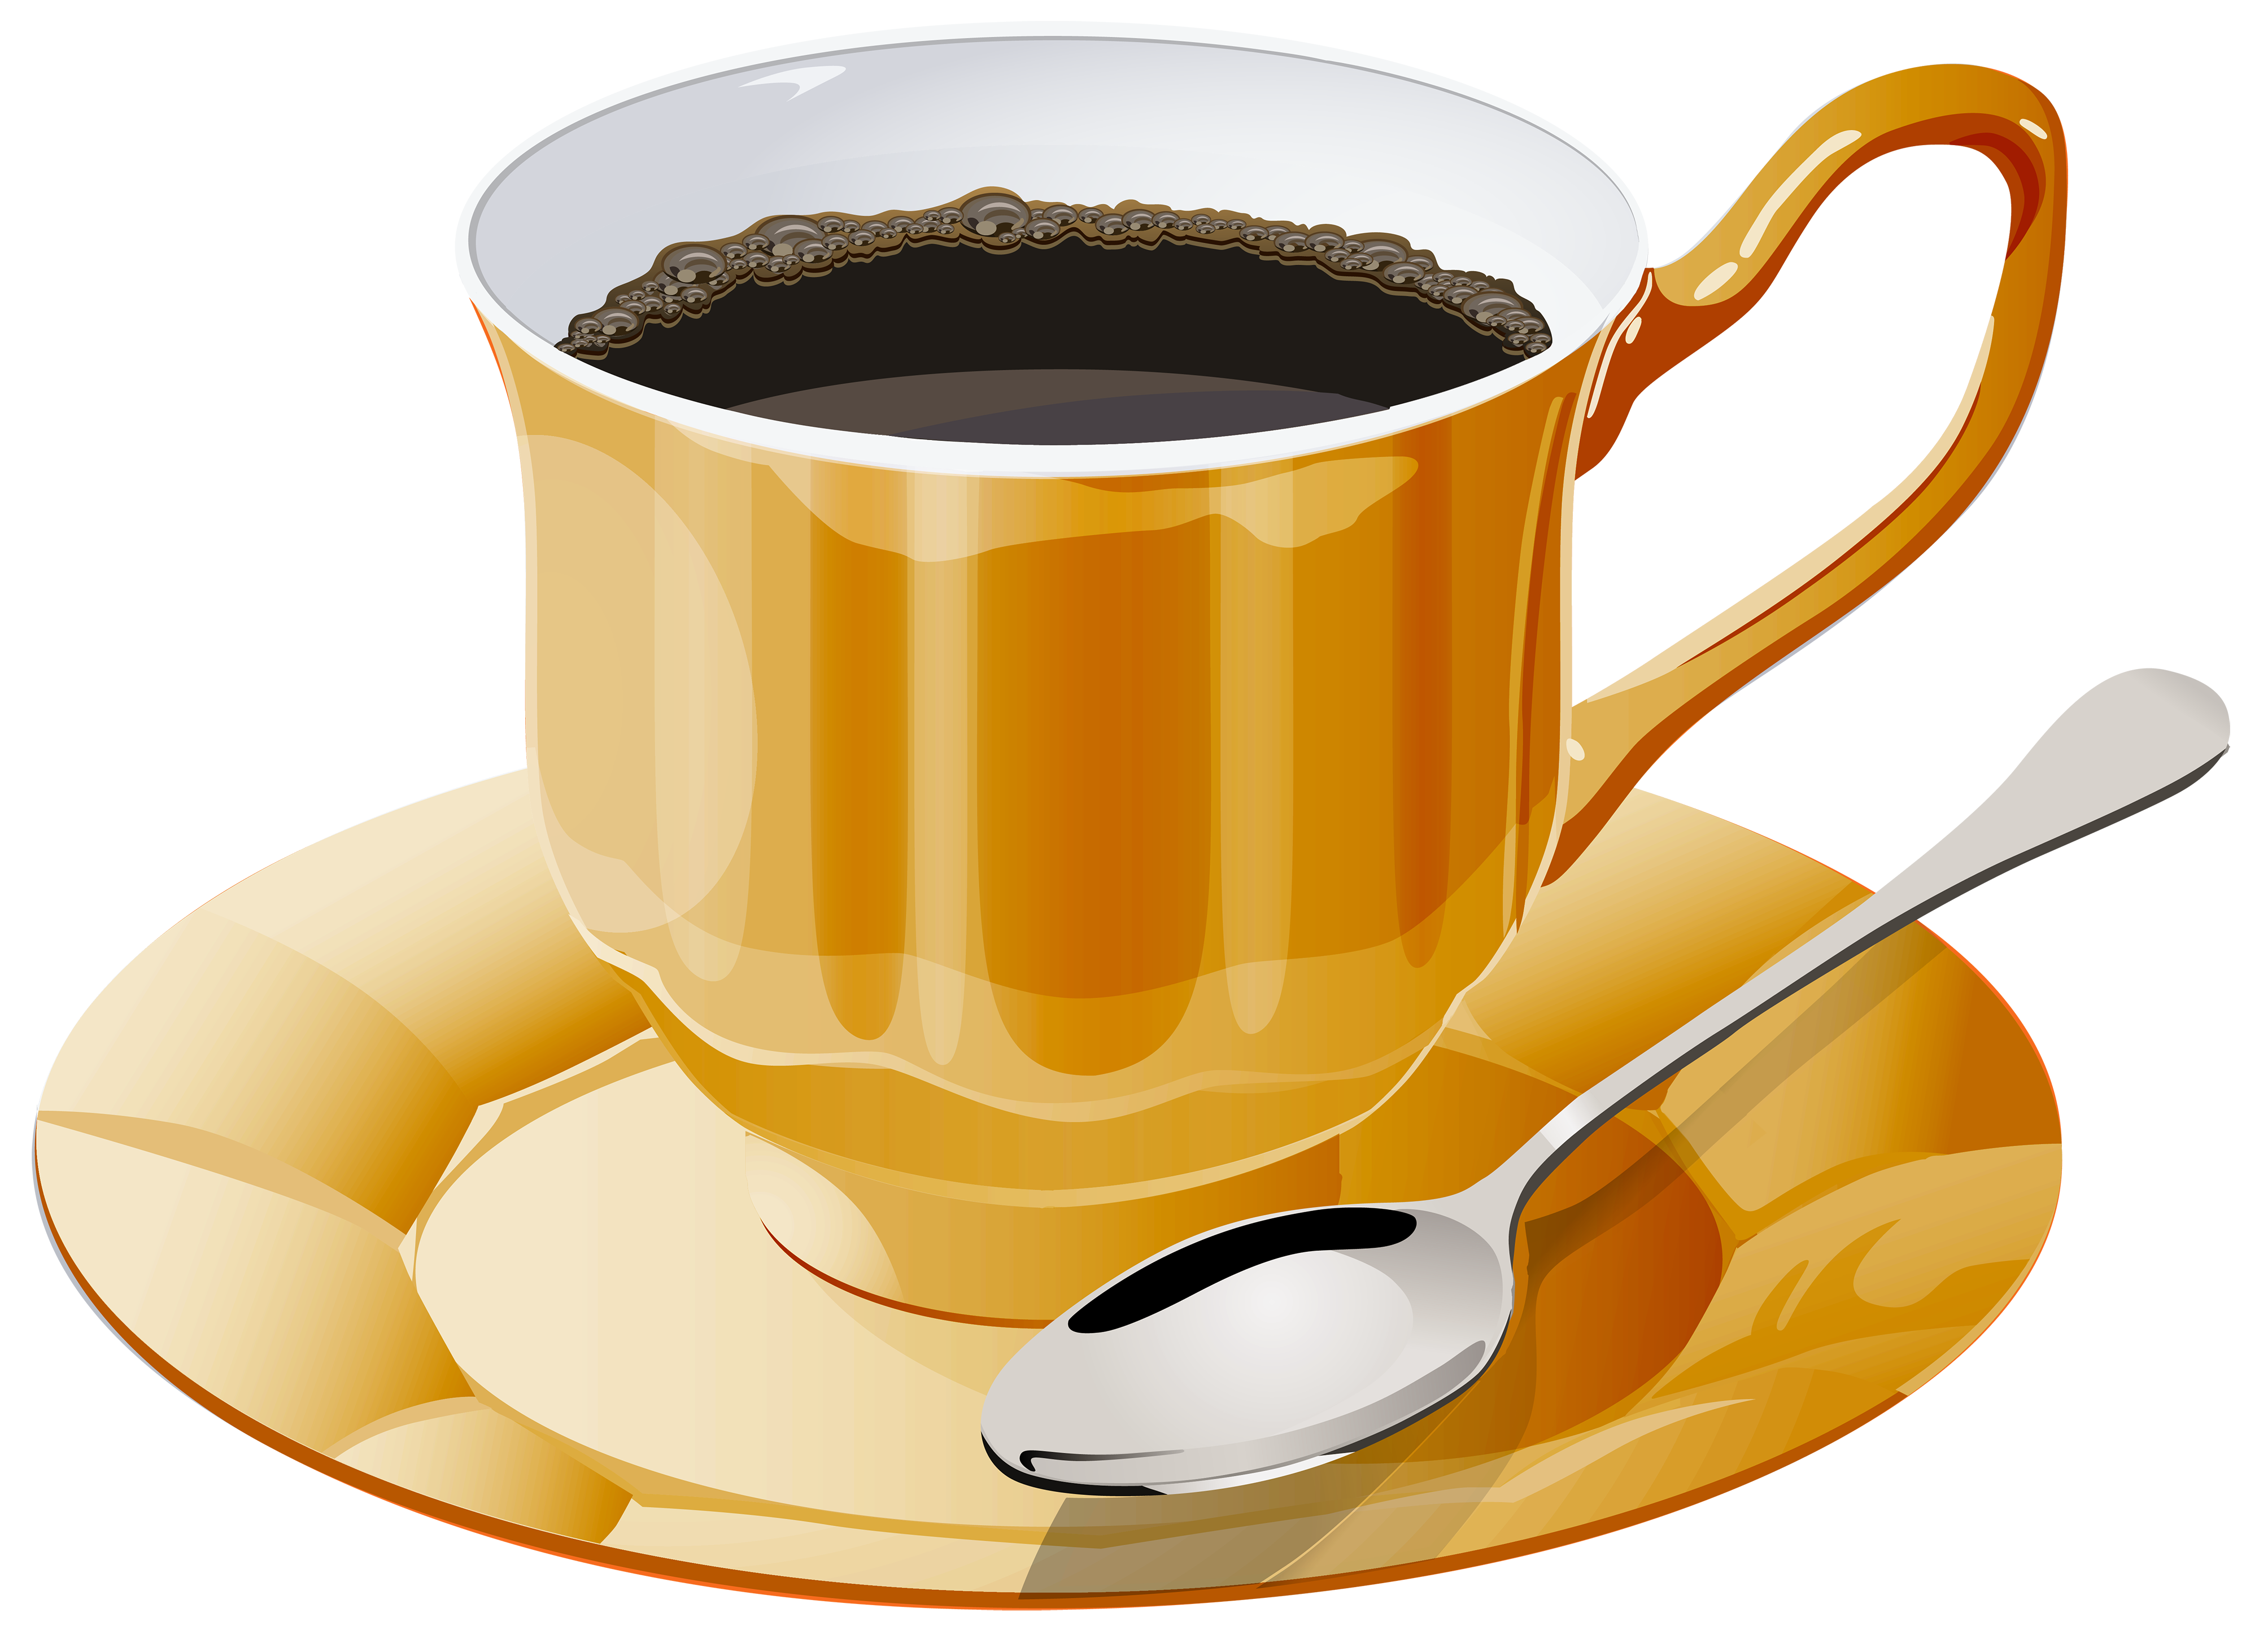 Png Morning Time - Pin by Ynnam on PNG Clip Arts | Coffee png, Coffee cup art, Coffee ...